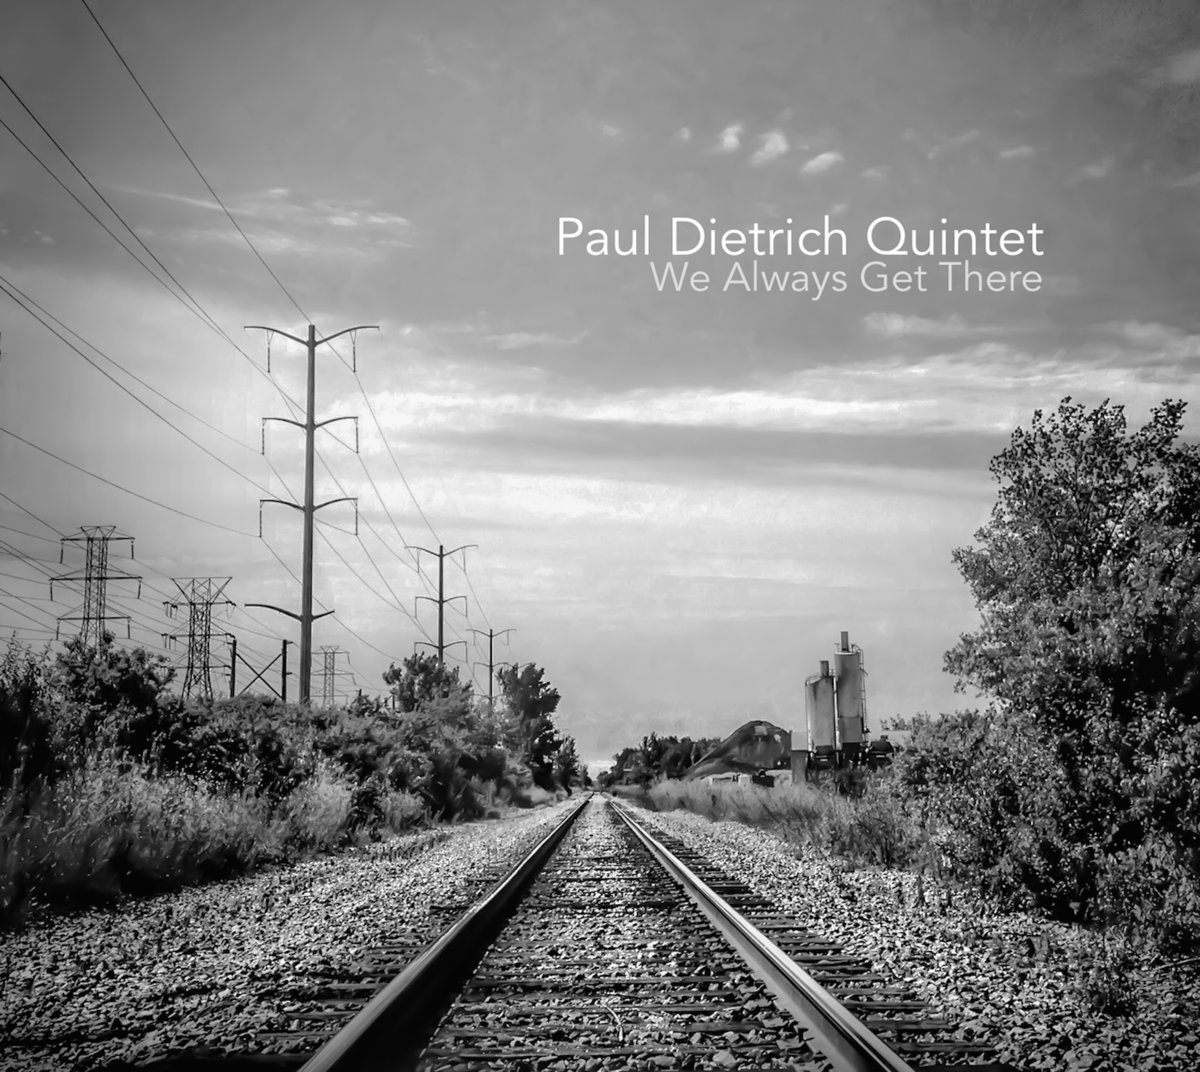 Paul Dietrich Quintet - We Always Get There (2014)